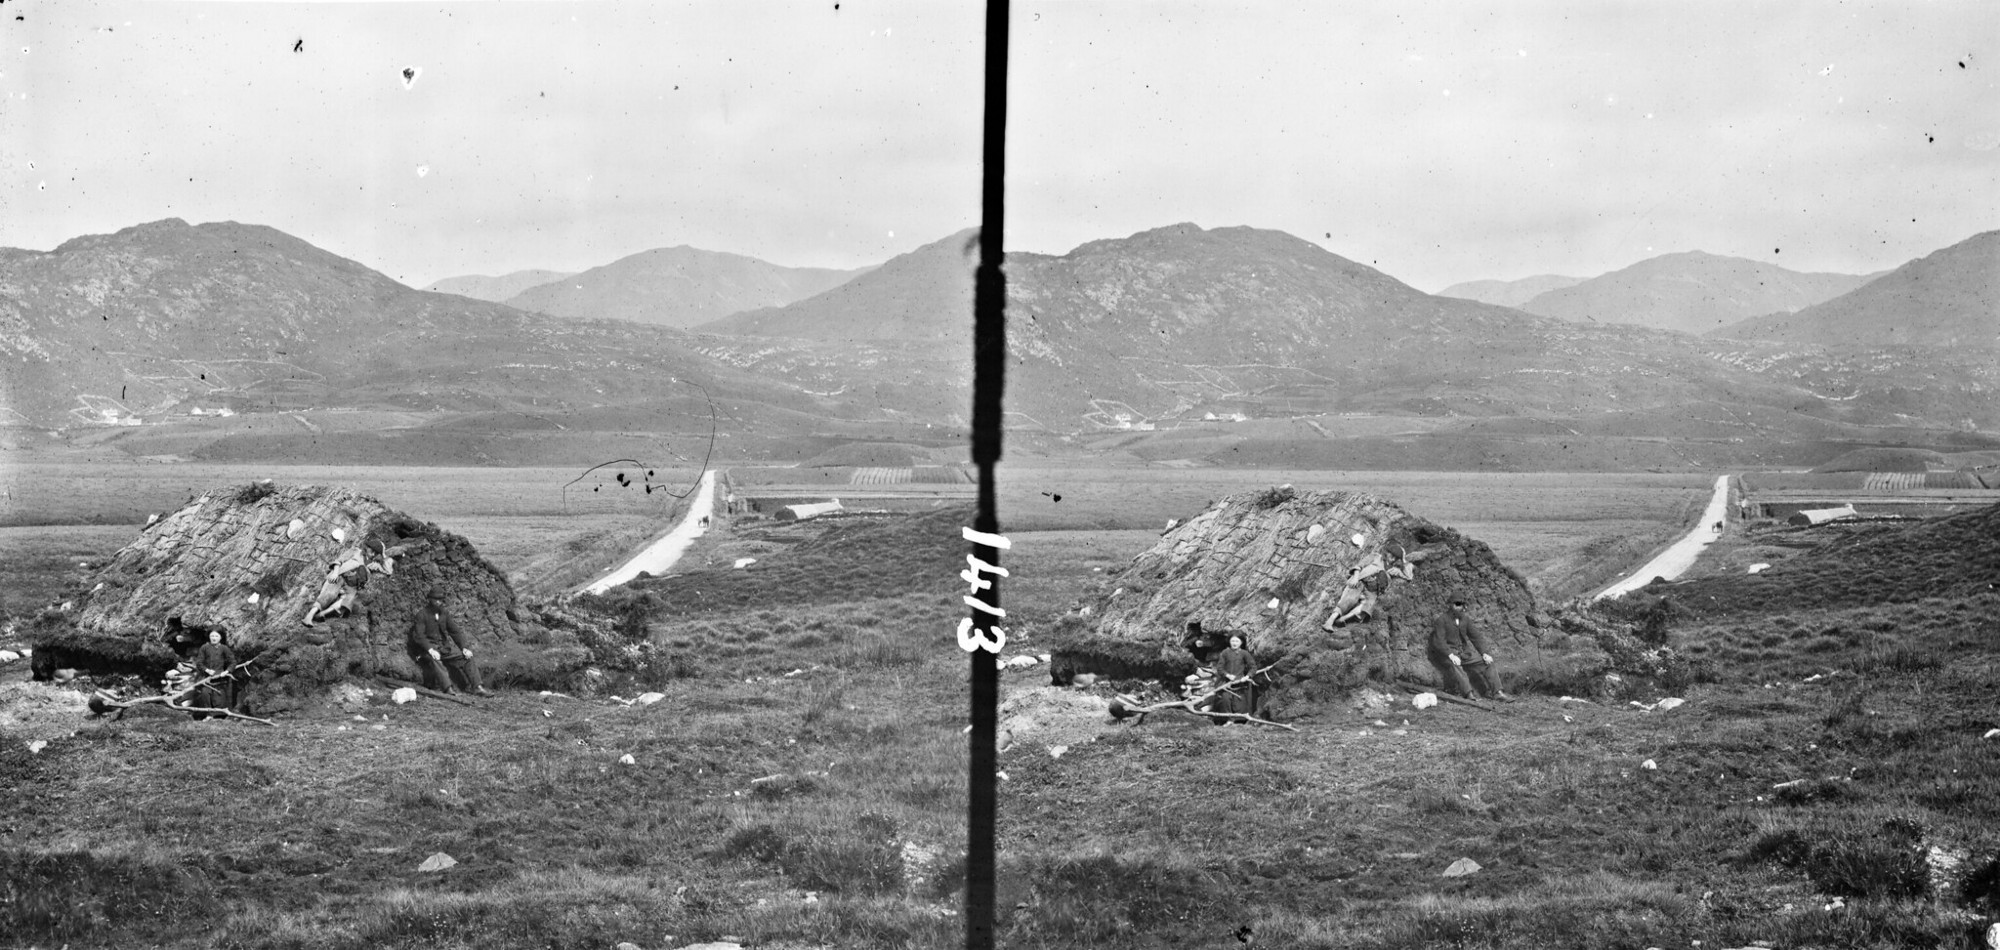 A stereo photograph, taken sometime between 1860 and 1880, showing men cutting turf from a bog in Connemara.